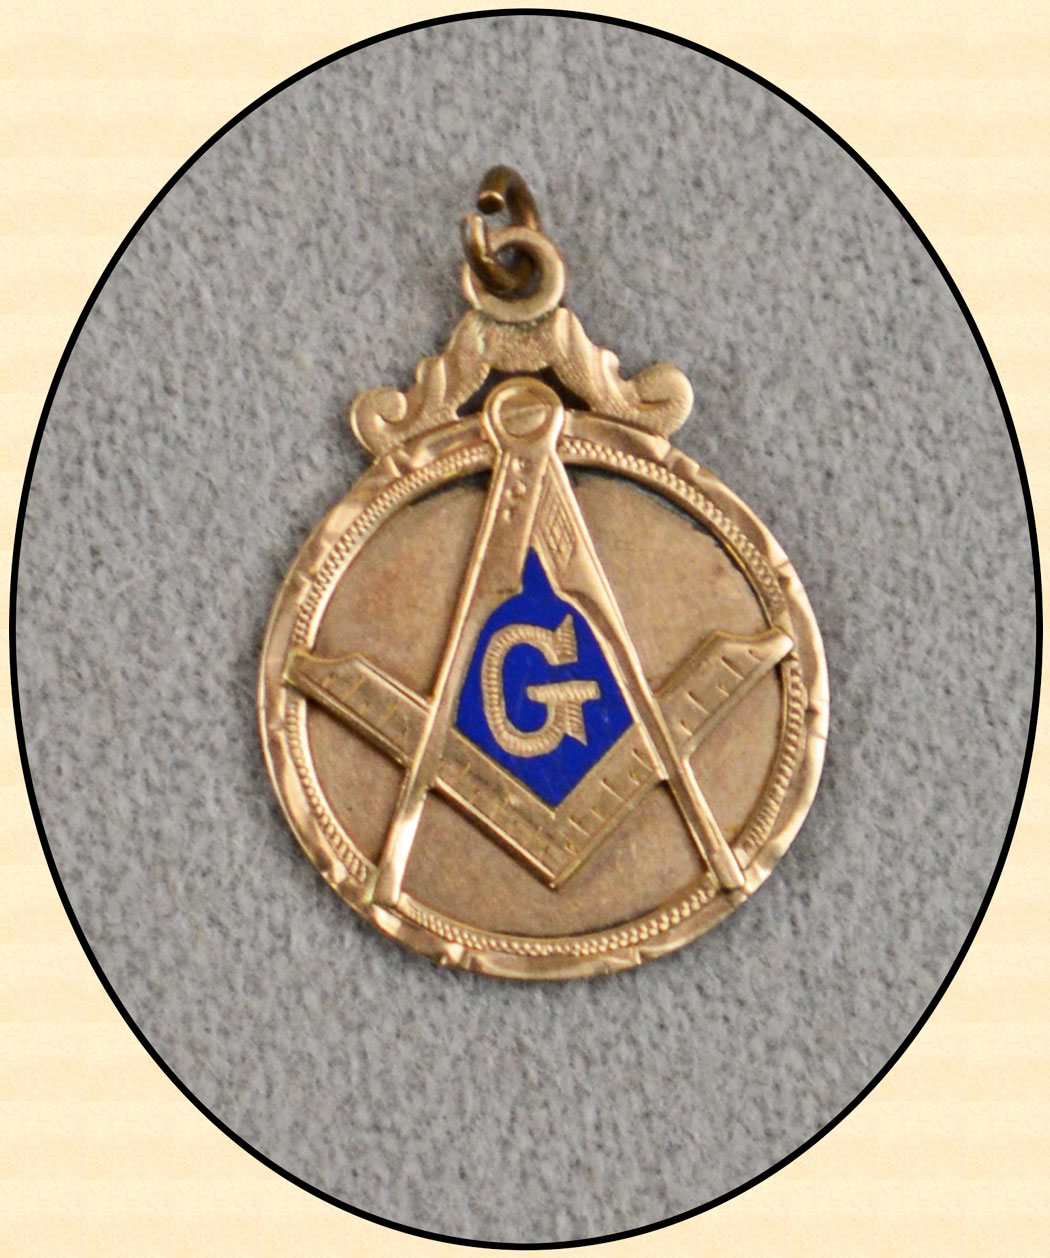 z Sold ~ Antique Masonic square & Compass 18K Gold Watch Fob | 1050 x 1258 jpeg 241kB